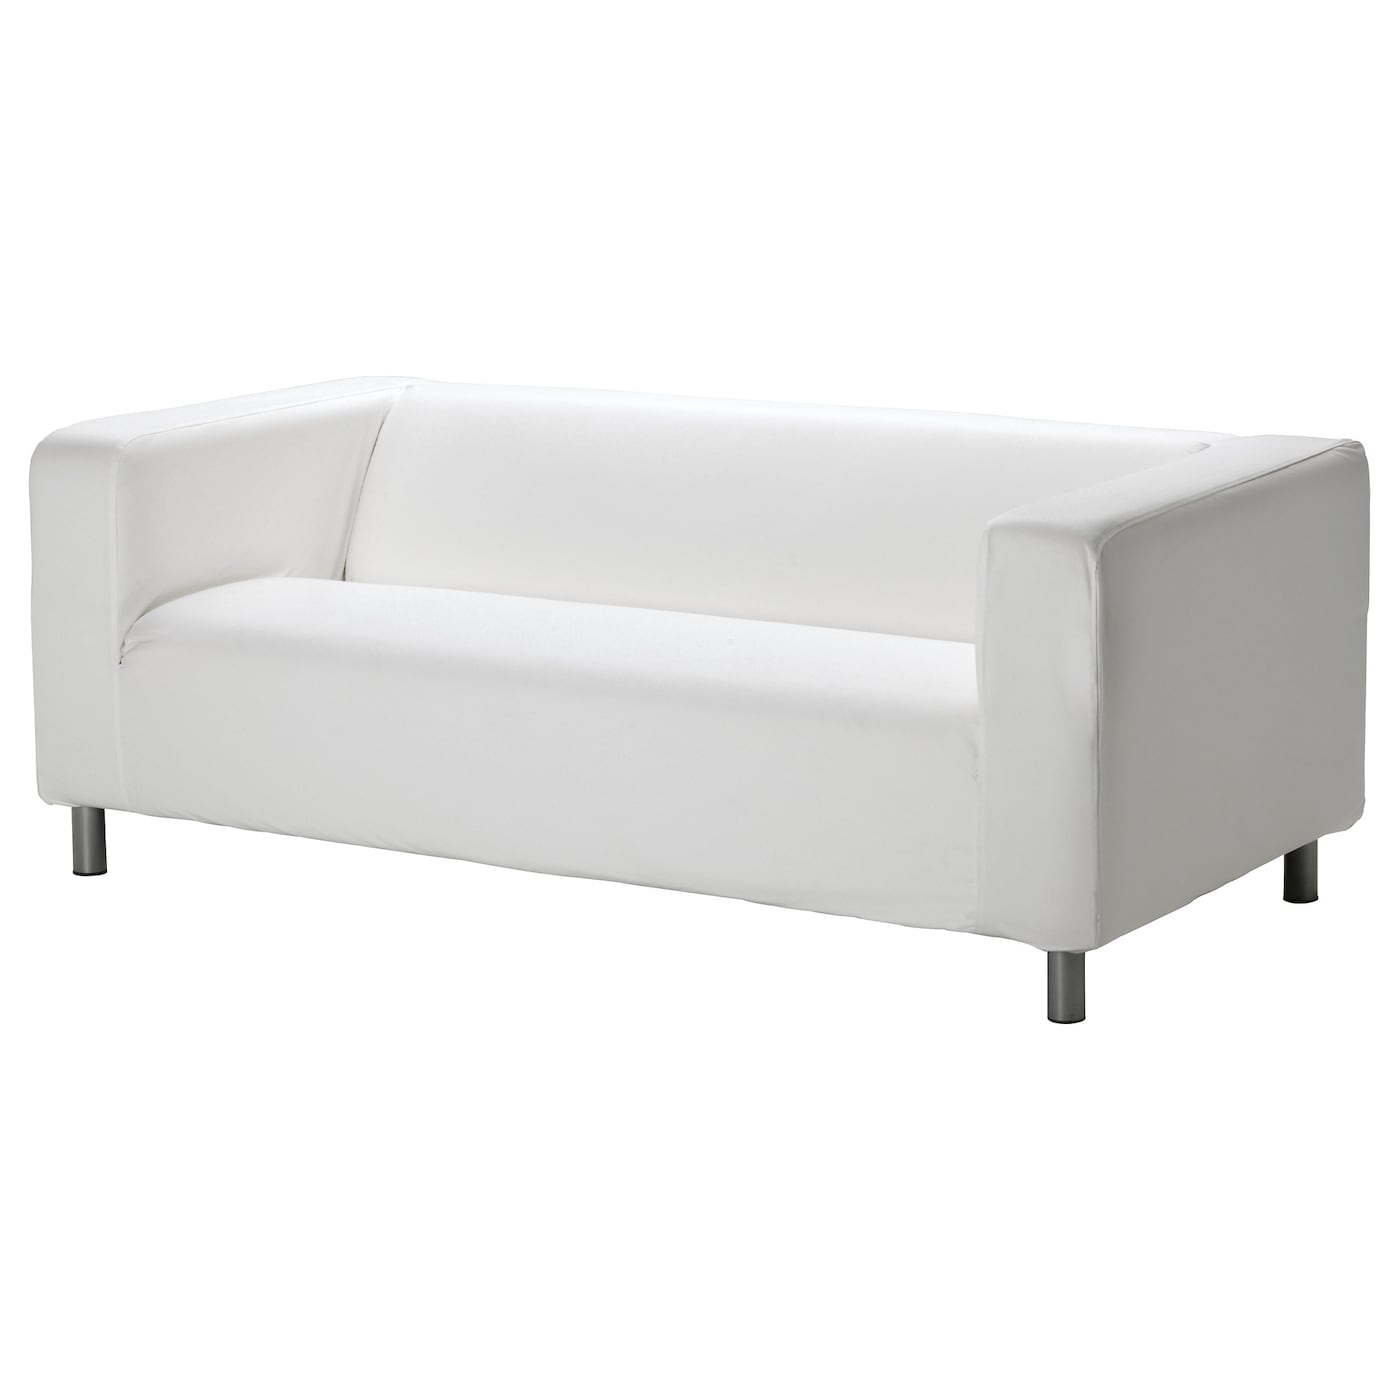 klippan two seat sofa ransta white ikea